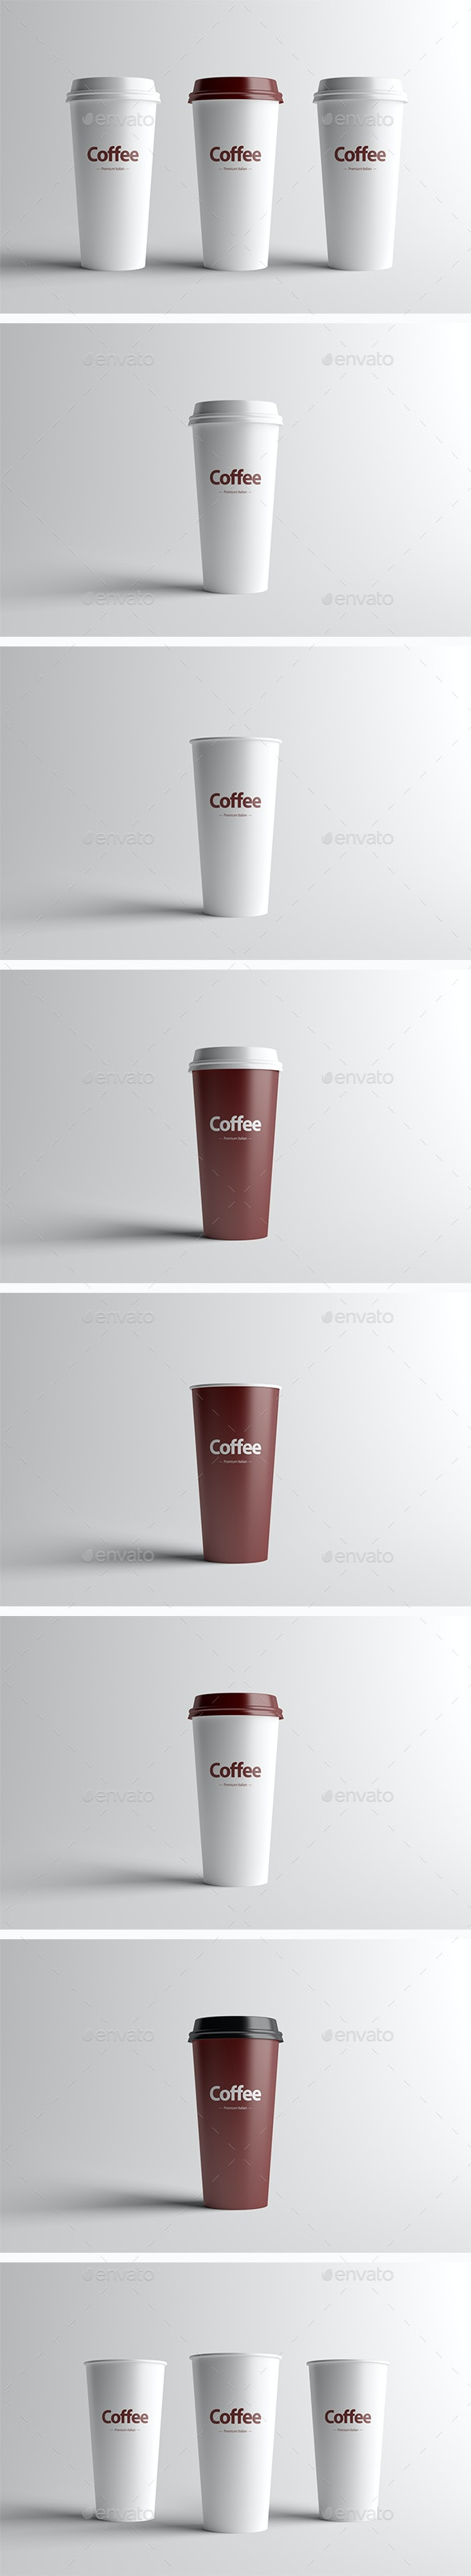 Paper Coffee Cup Packaging Mock-Up - Large - Food and Drink Packaging